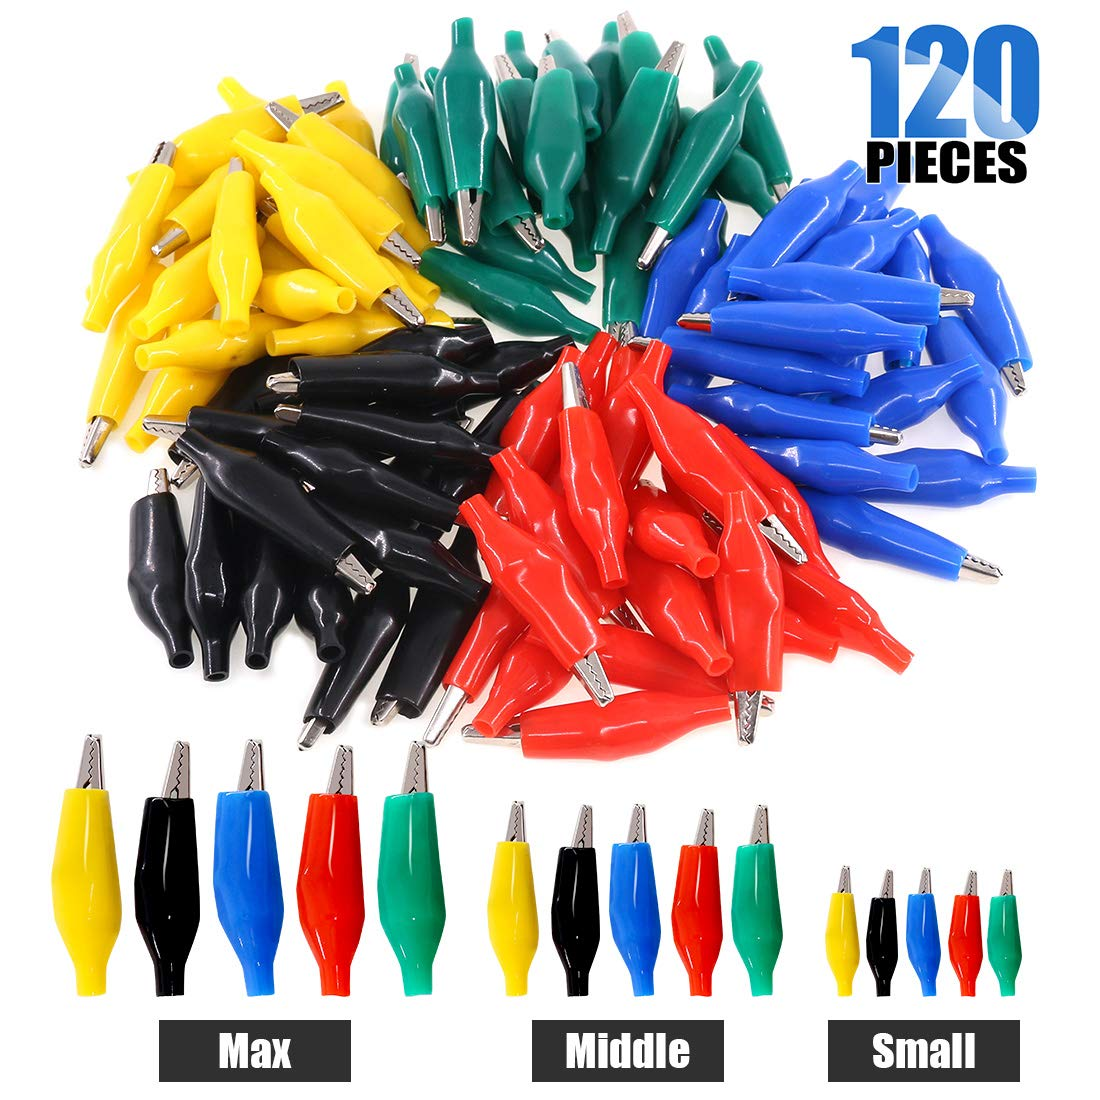 Glarks 120Pcs 28mm 35mm 45mm Alligator Clips Crocodile Electrical Test Clamps Jumper Helper with Protective Insulation Cover (Black, Red, Yellow, Blue, Green) by Glarks